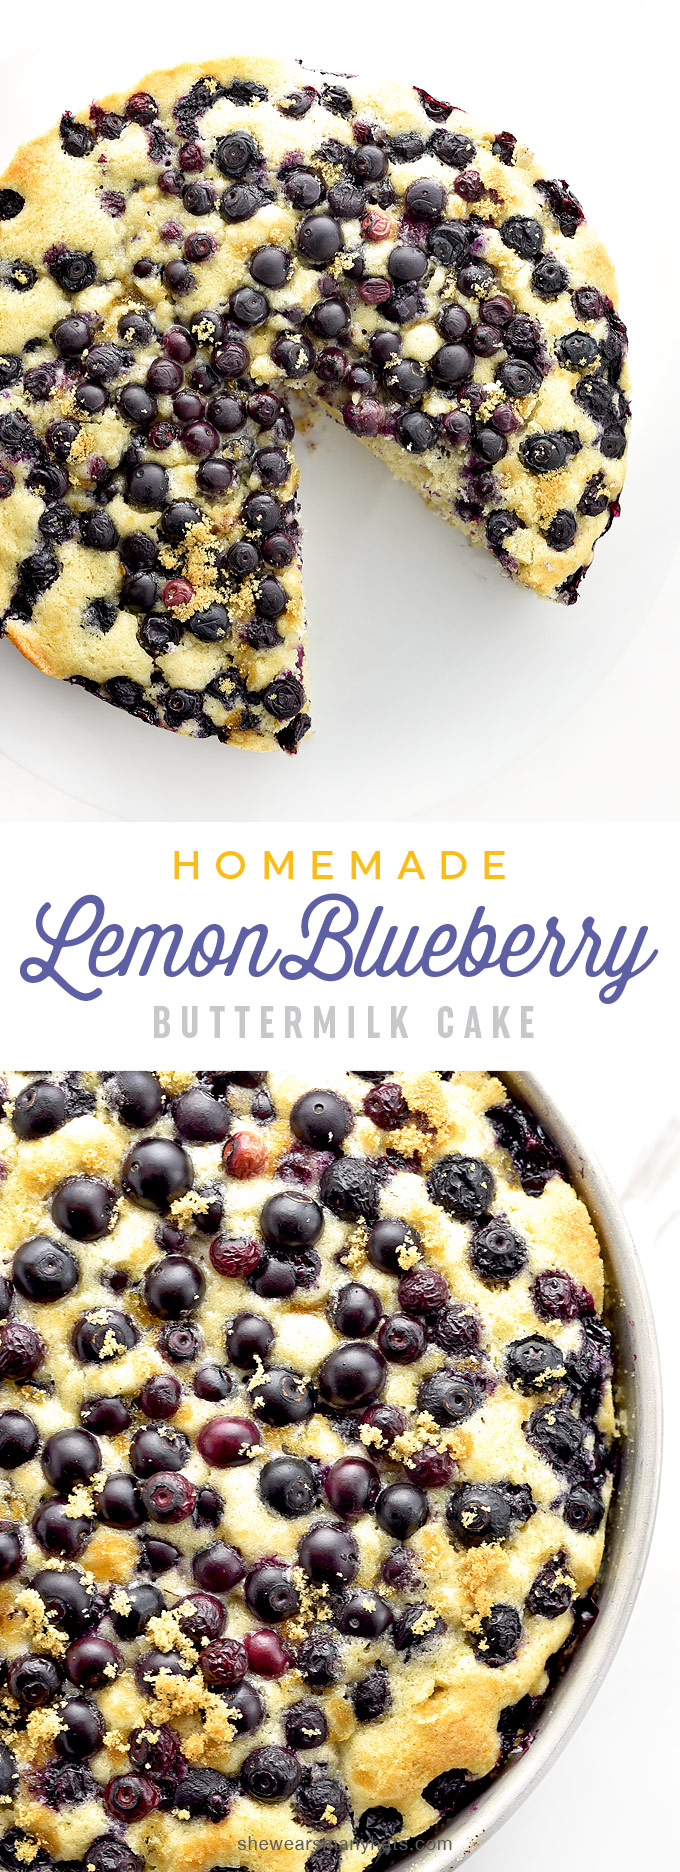 Homemade Lemon Blueberry Buttermilk Cake Recipe | shewearsmanyhats.com